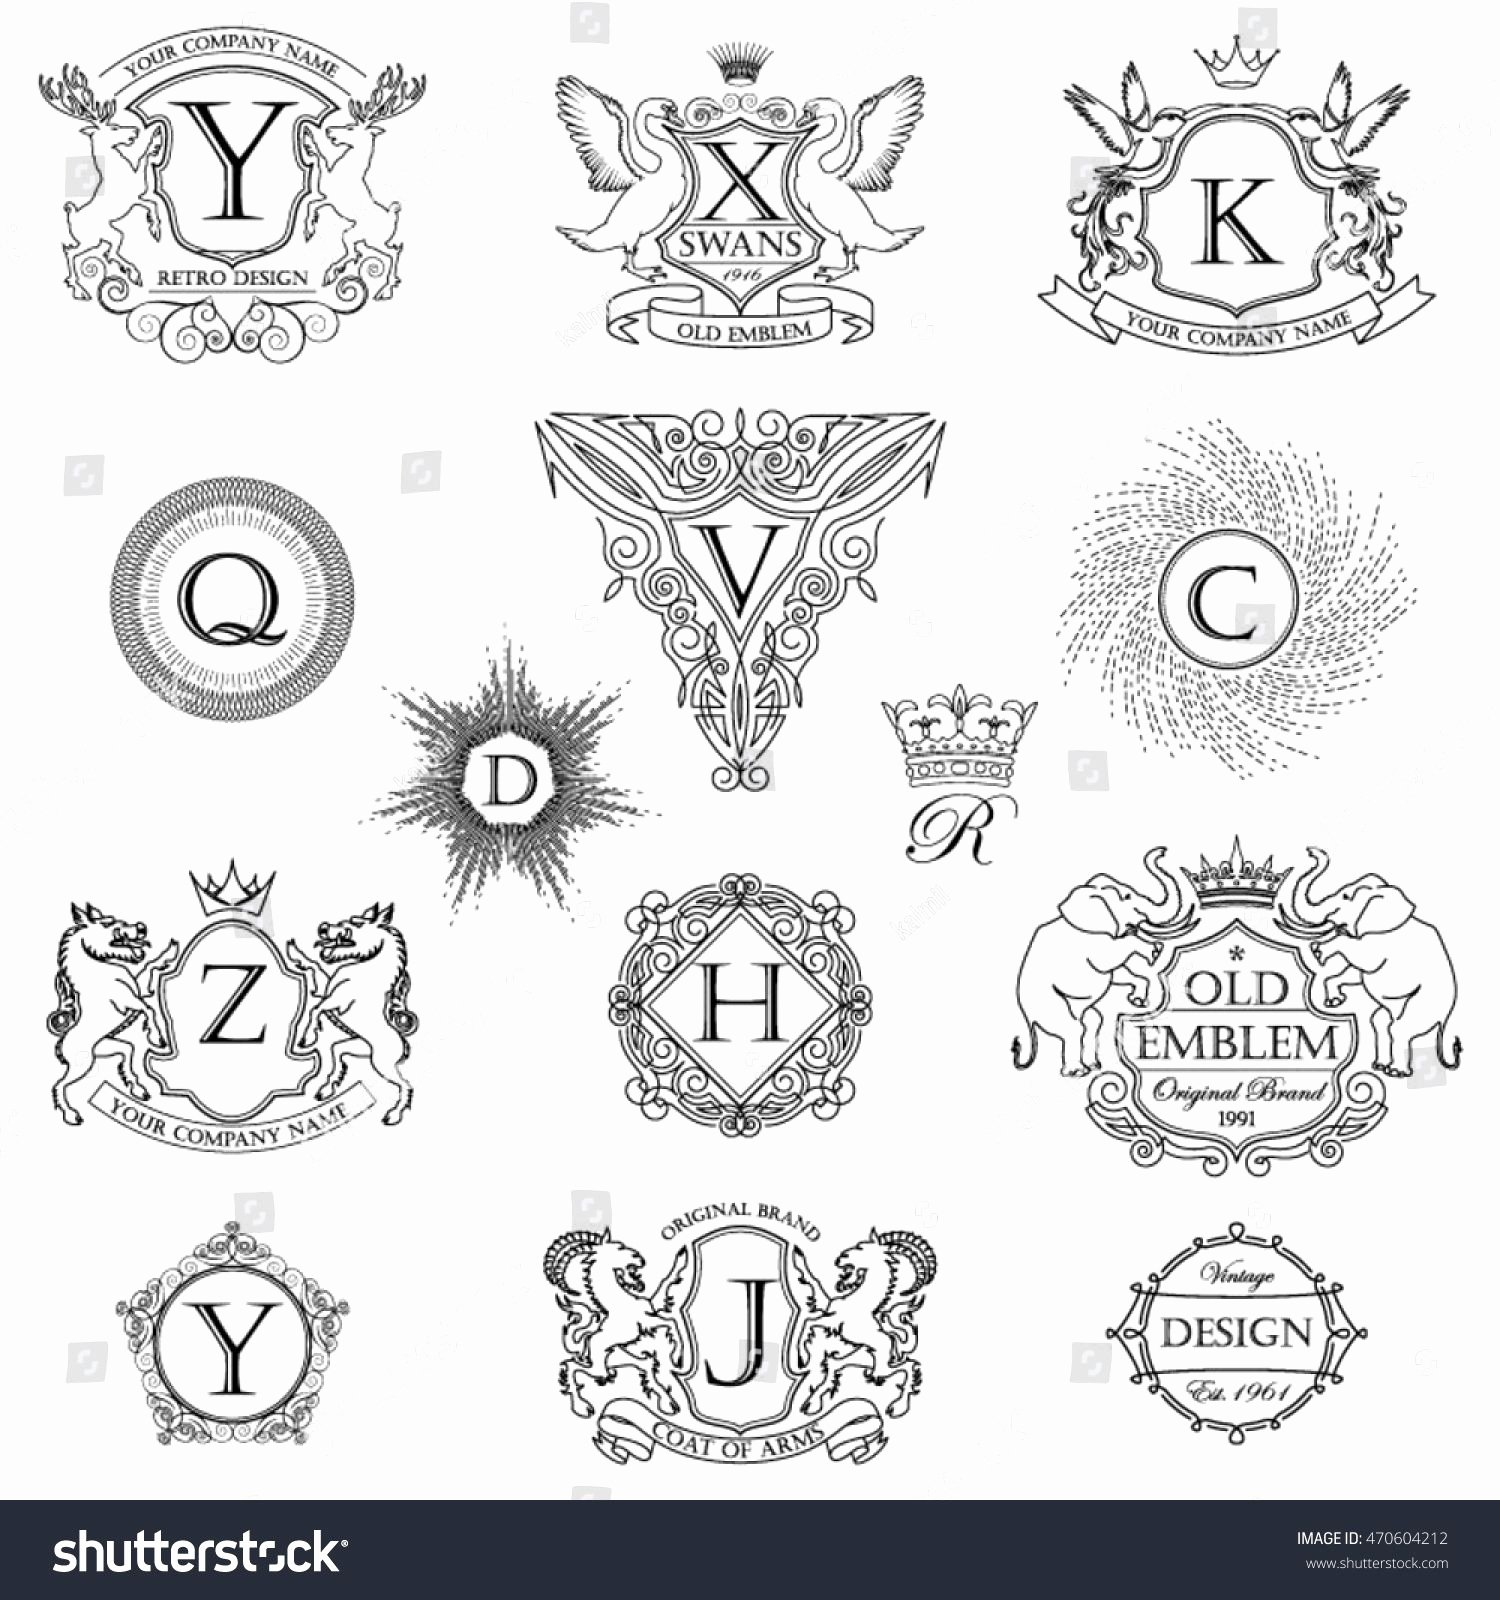 Personal Coat Of Arms Template Lovely Coat Arms Template Vector at Getdrawings